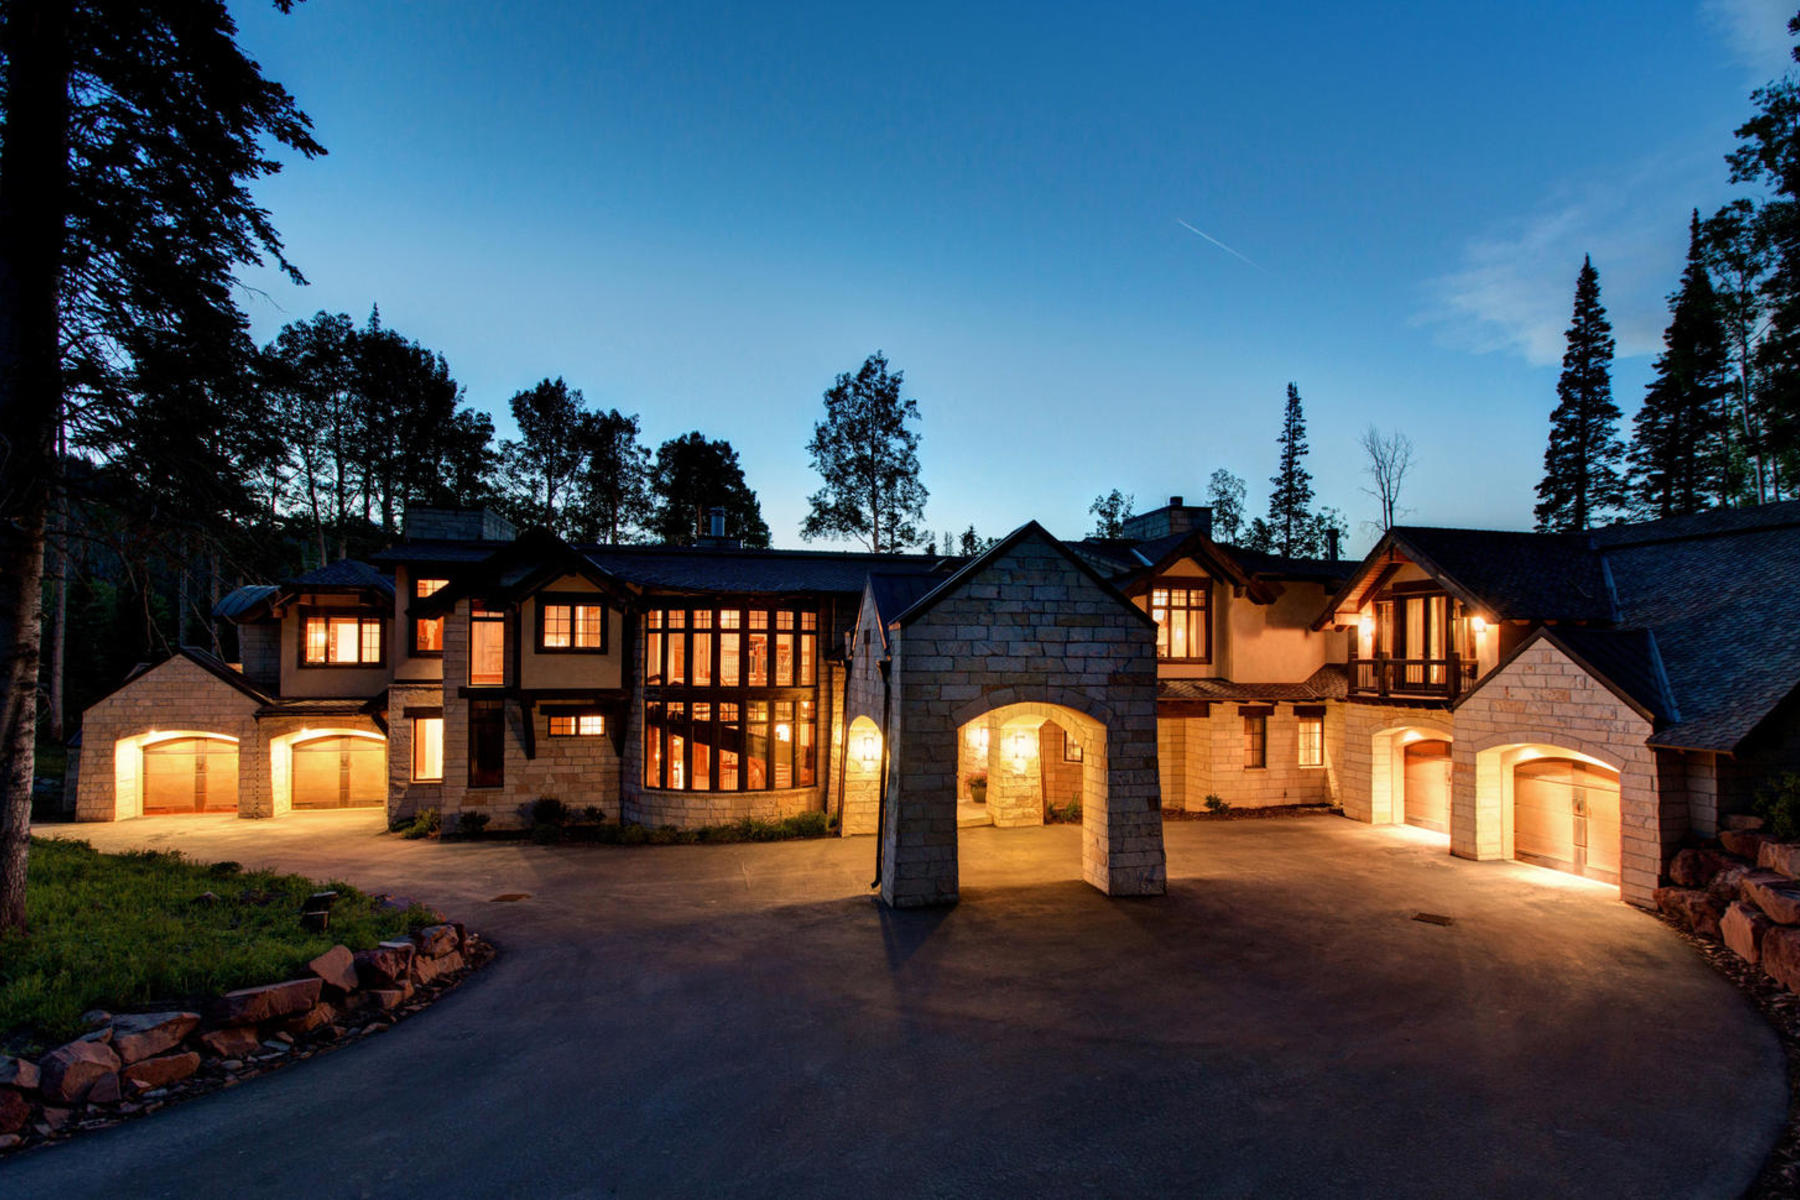 独户住宅 为 销售 在 Unique Privacy and Seclusion with Unparalleled Ski Access 98 White Pine Canyon Rd 帕克城, 犹他州, 84098 美国